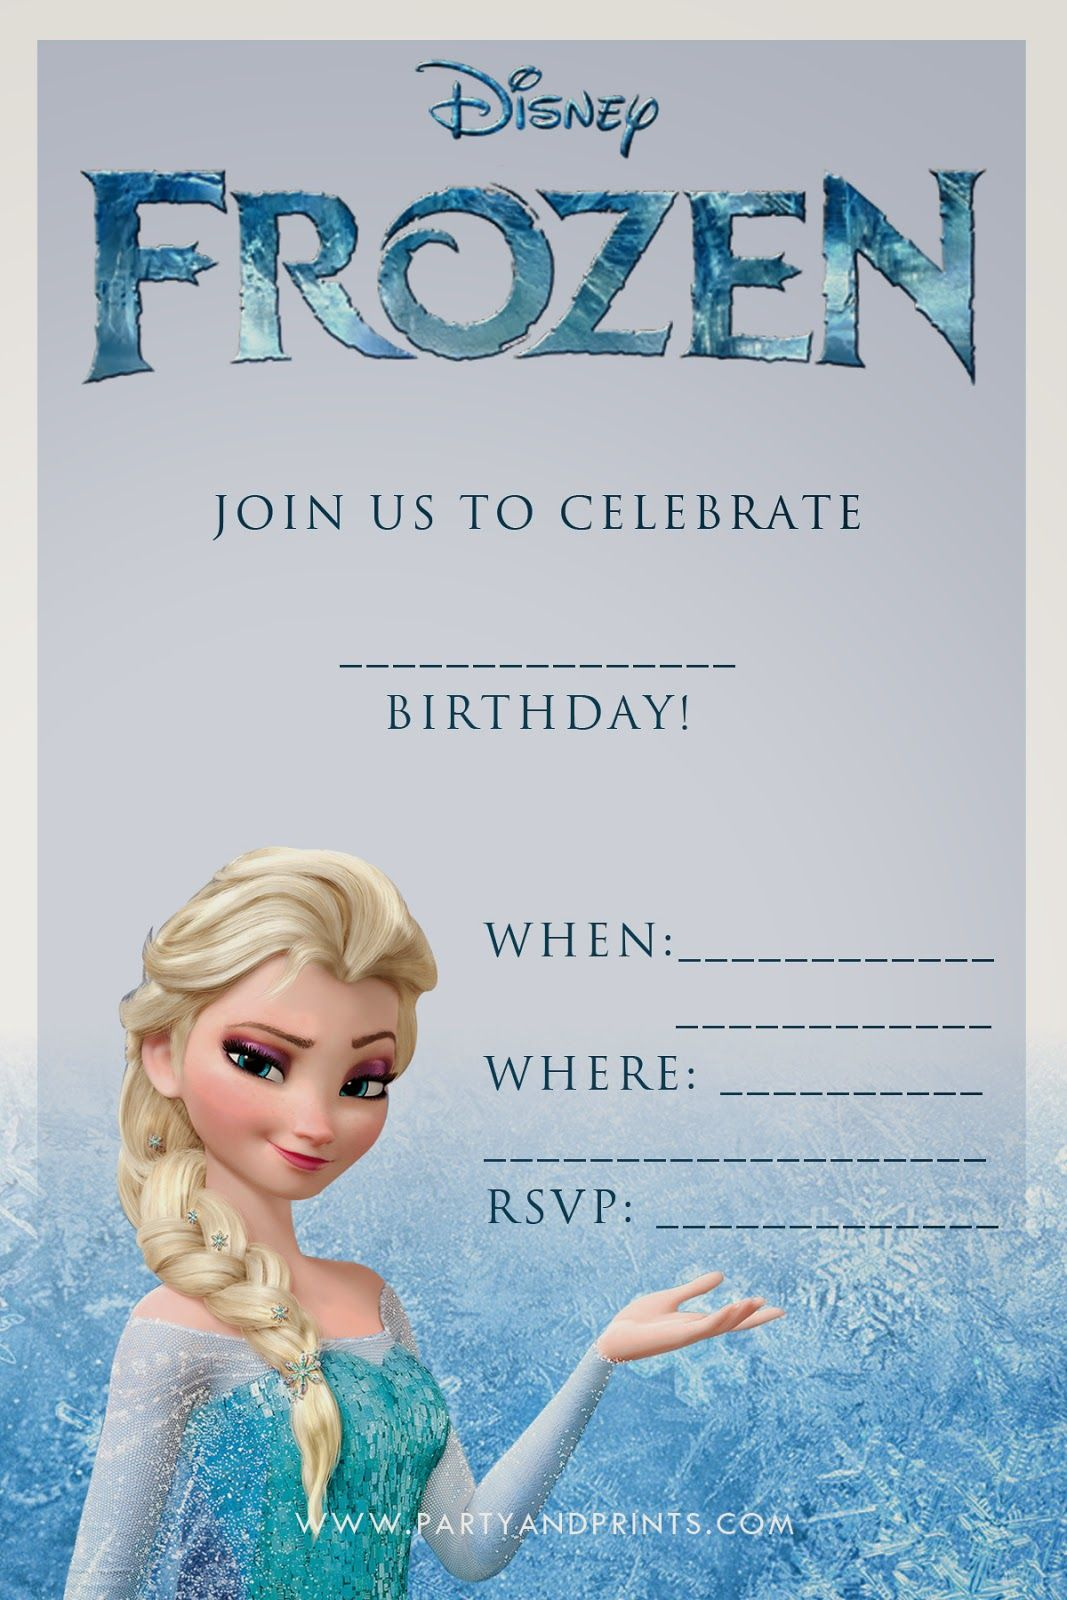 FREEBIE-FRIDAY (GRATIS PRINT) | tractor | Pinterest | Frozen ...